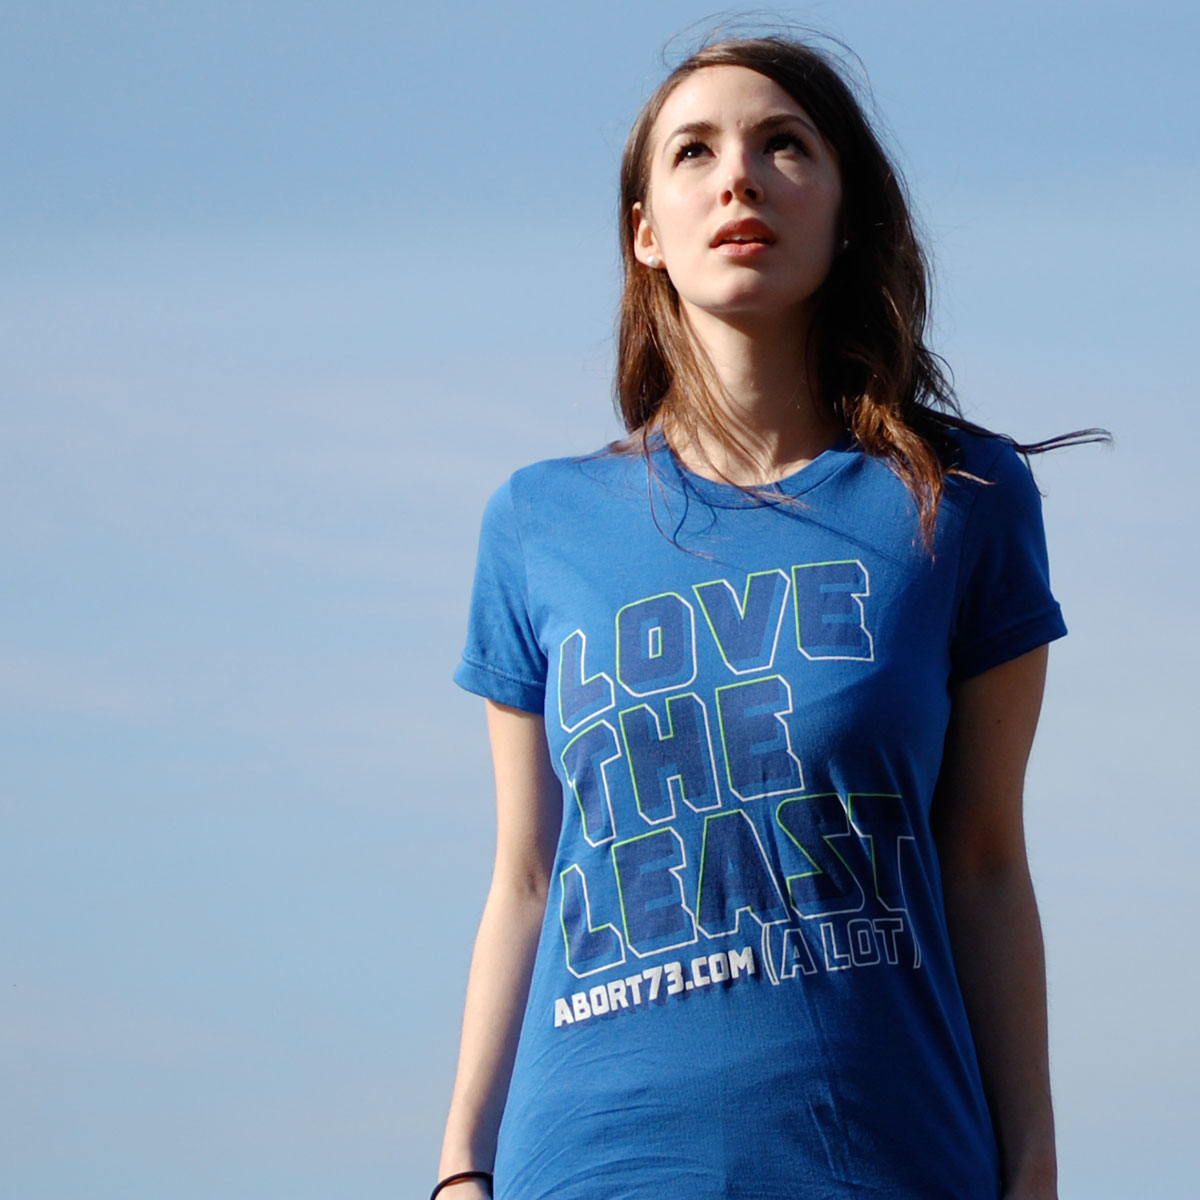 Love the Least (A Lot) (Abort73 Girls T-shirt)